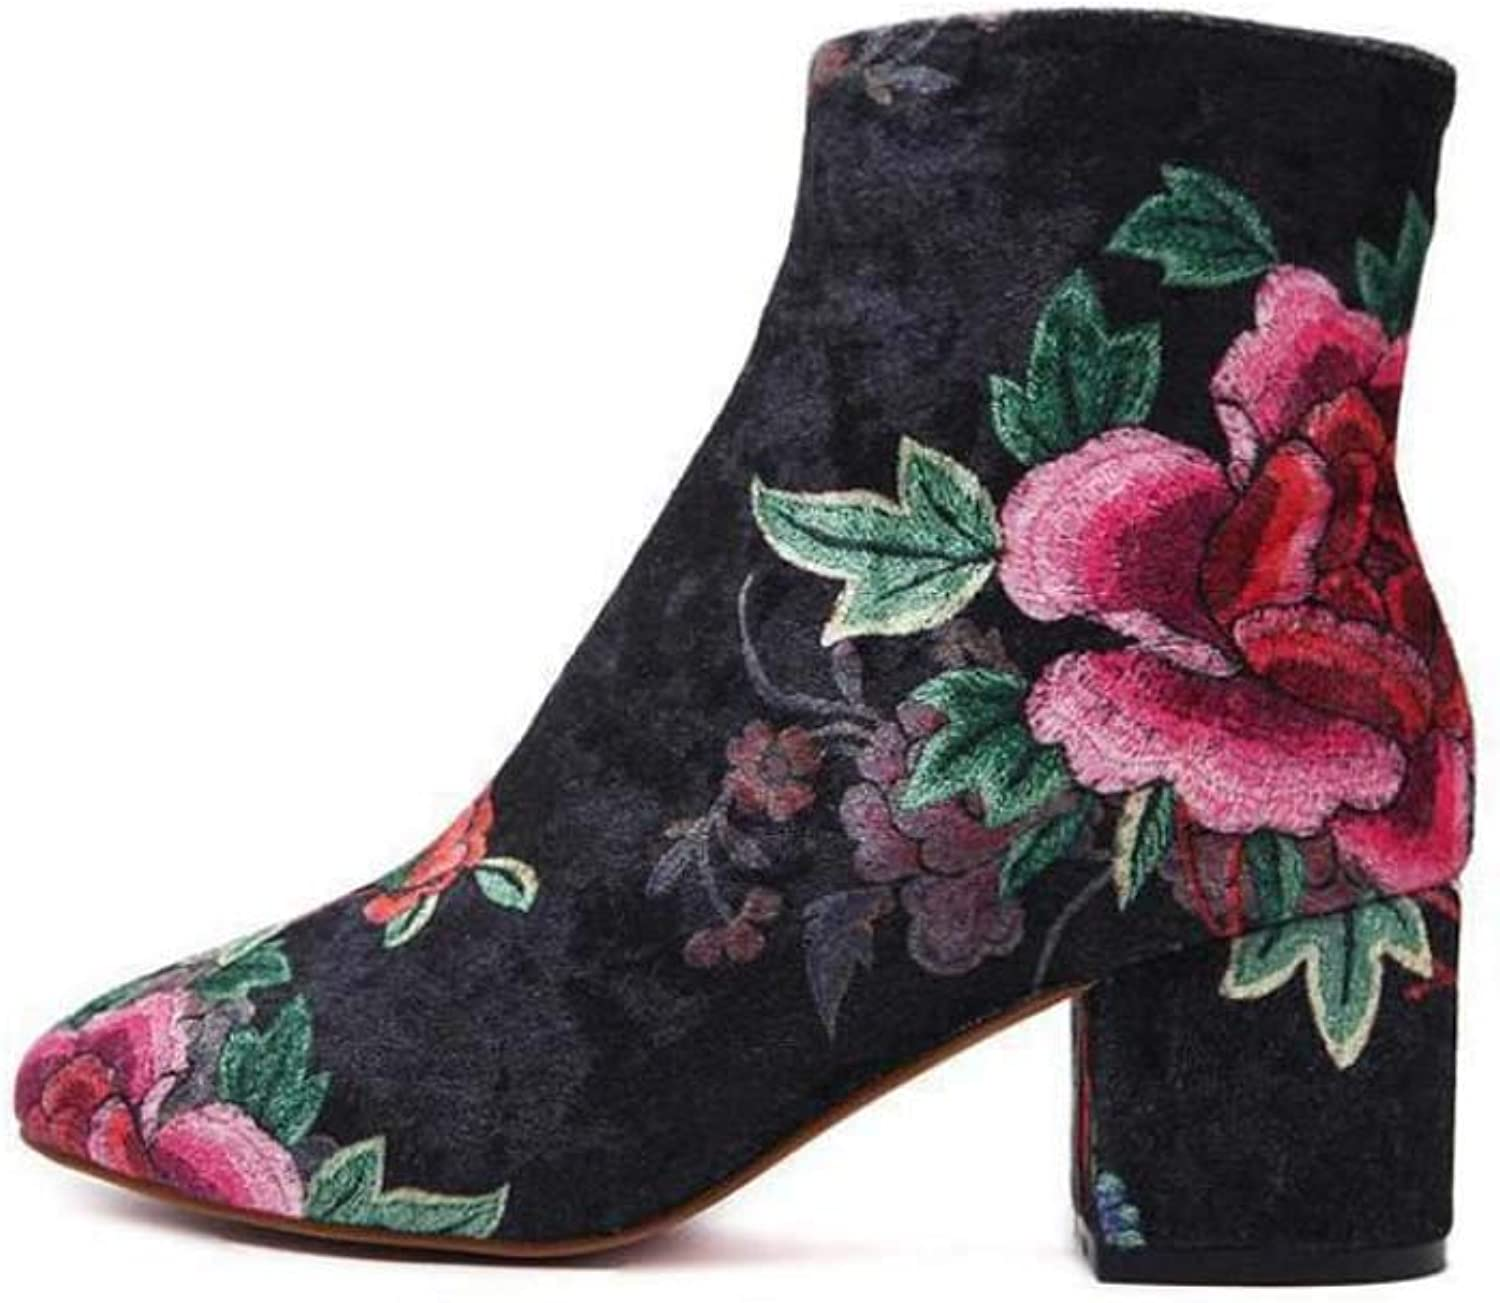 Embroidered pinks Ankle Boots Party Dress Bootie Women Elegant Round Toe 6cm Chunkly Heel OL Court shoes EU Size 35-40